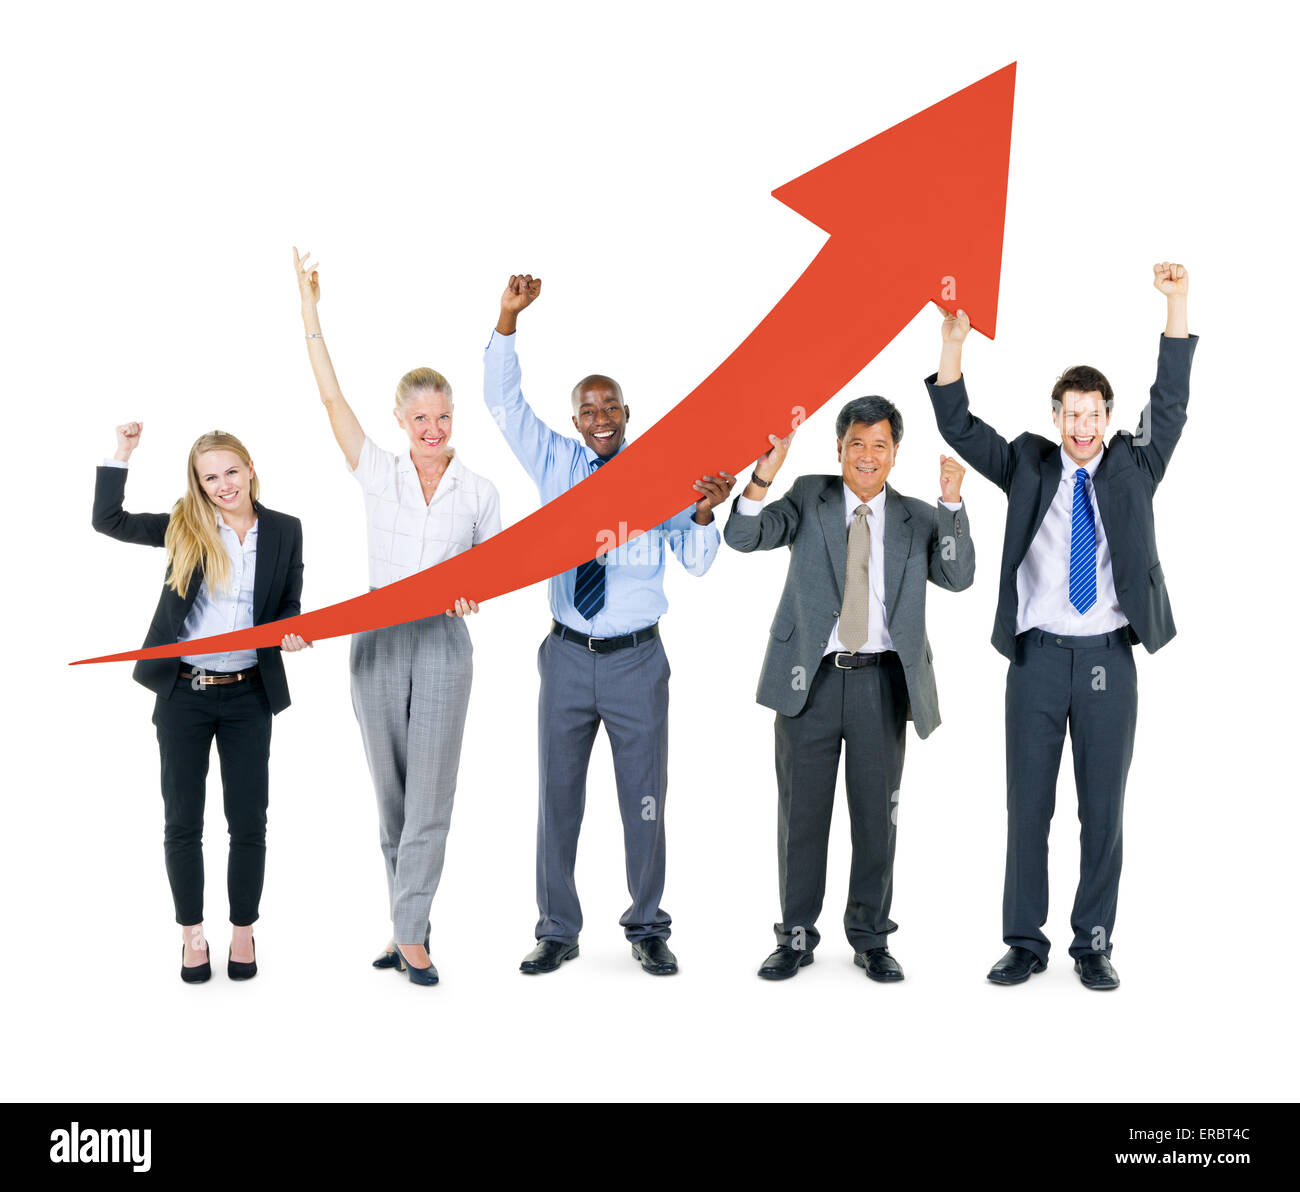 Growth - Stock Image